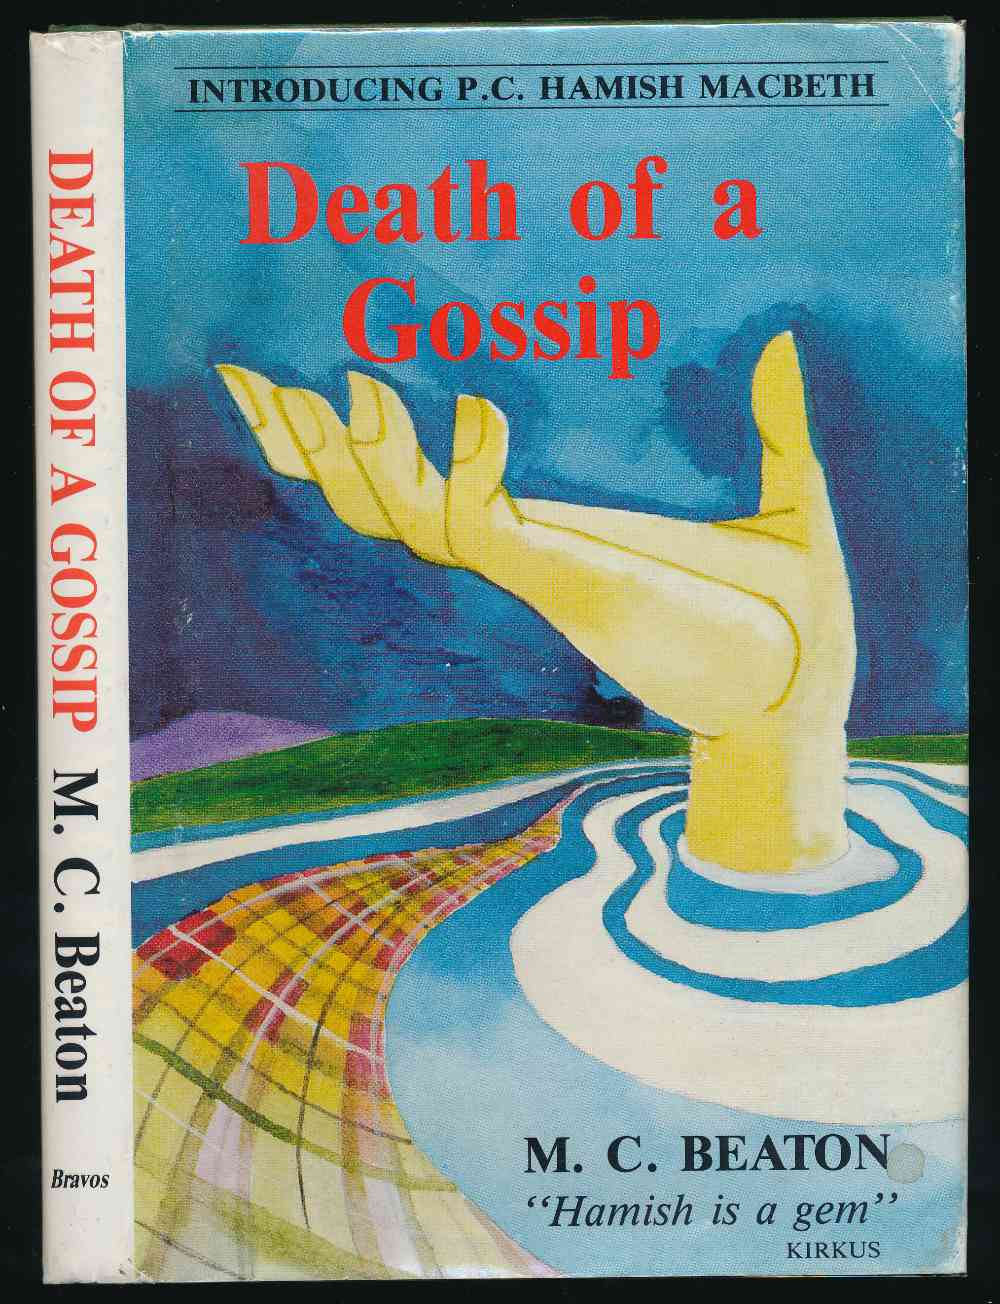 Death of a gossip : introducing P.C. Hamish Macbeth